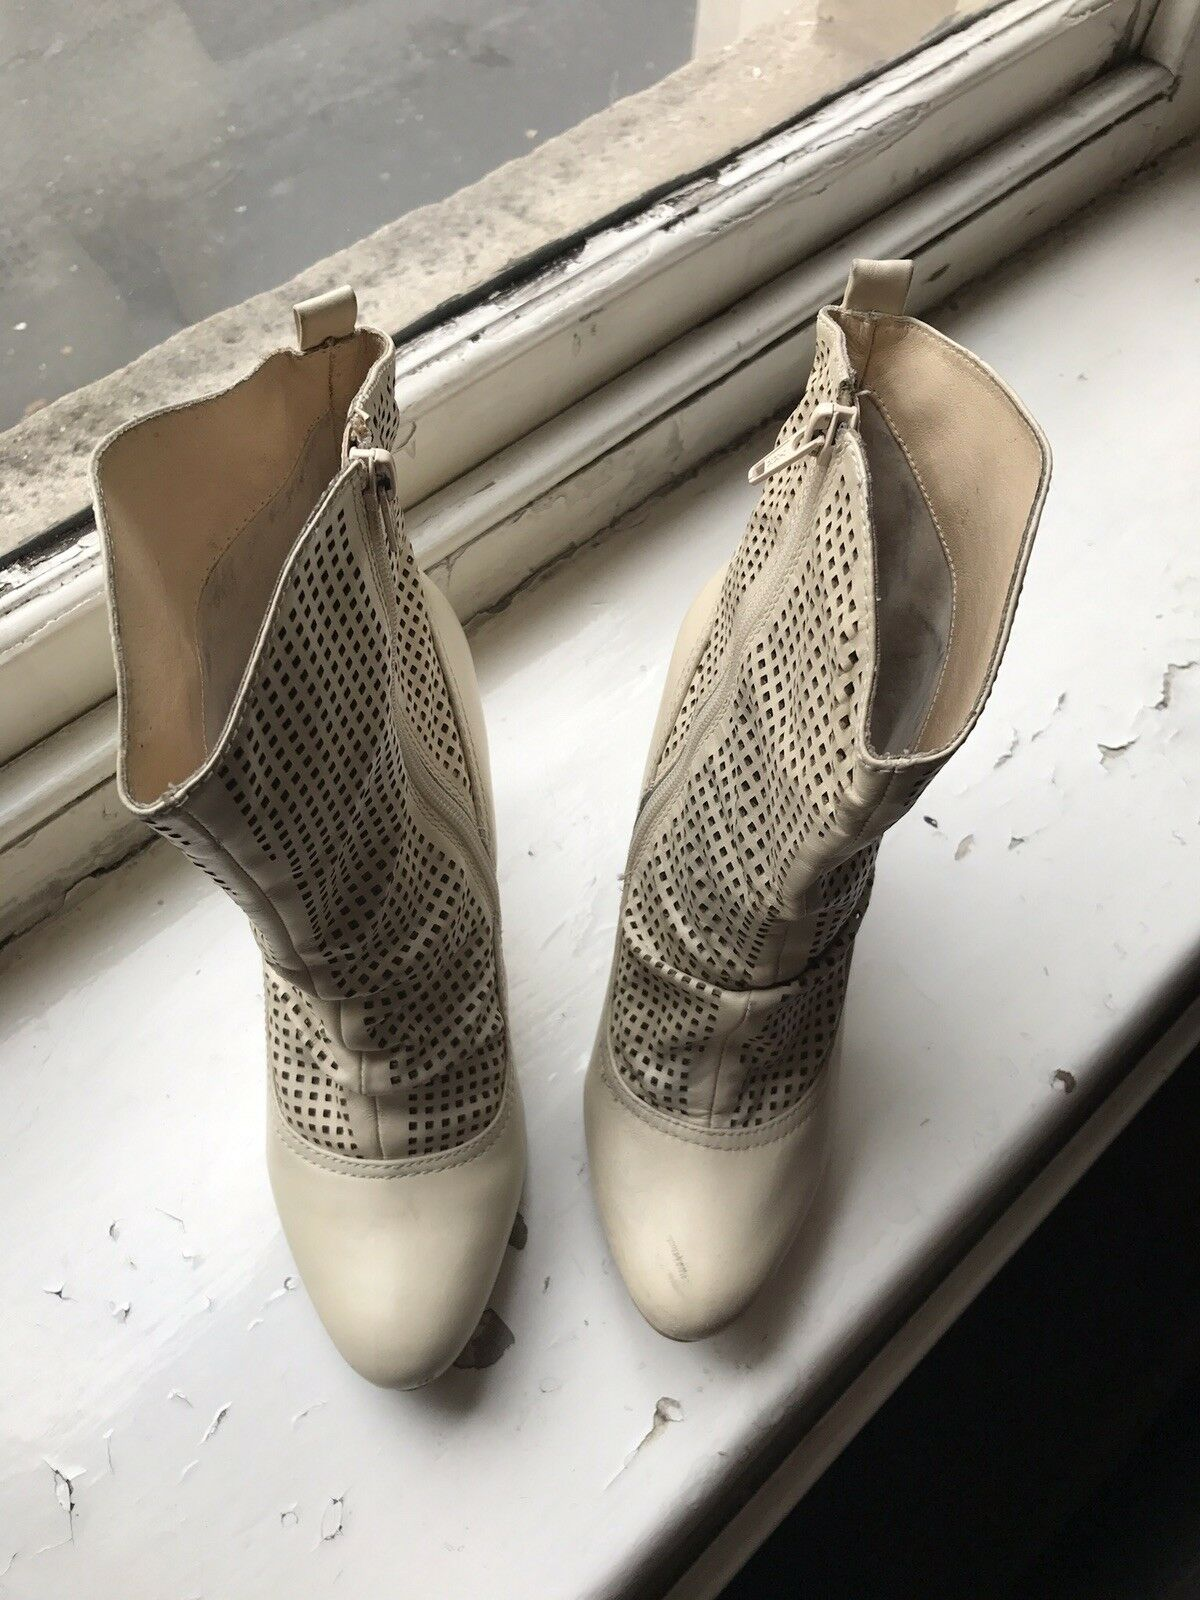 Beige Classy Funky Boots Pepe Jeans 38/5